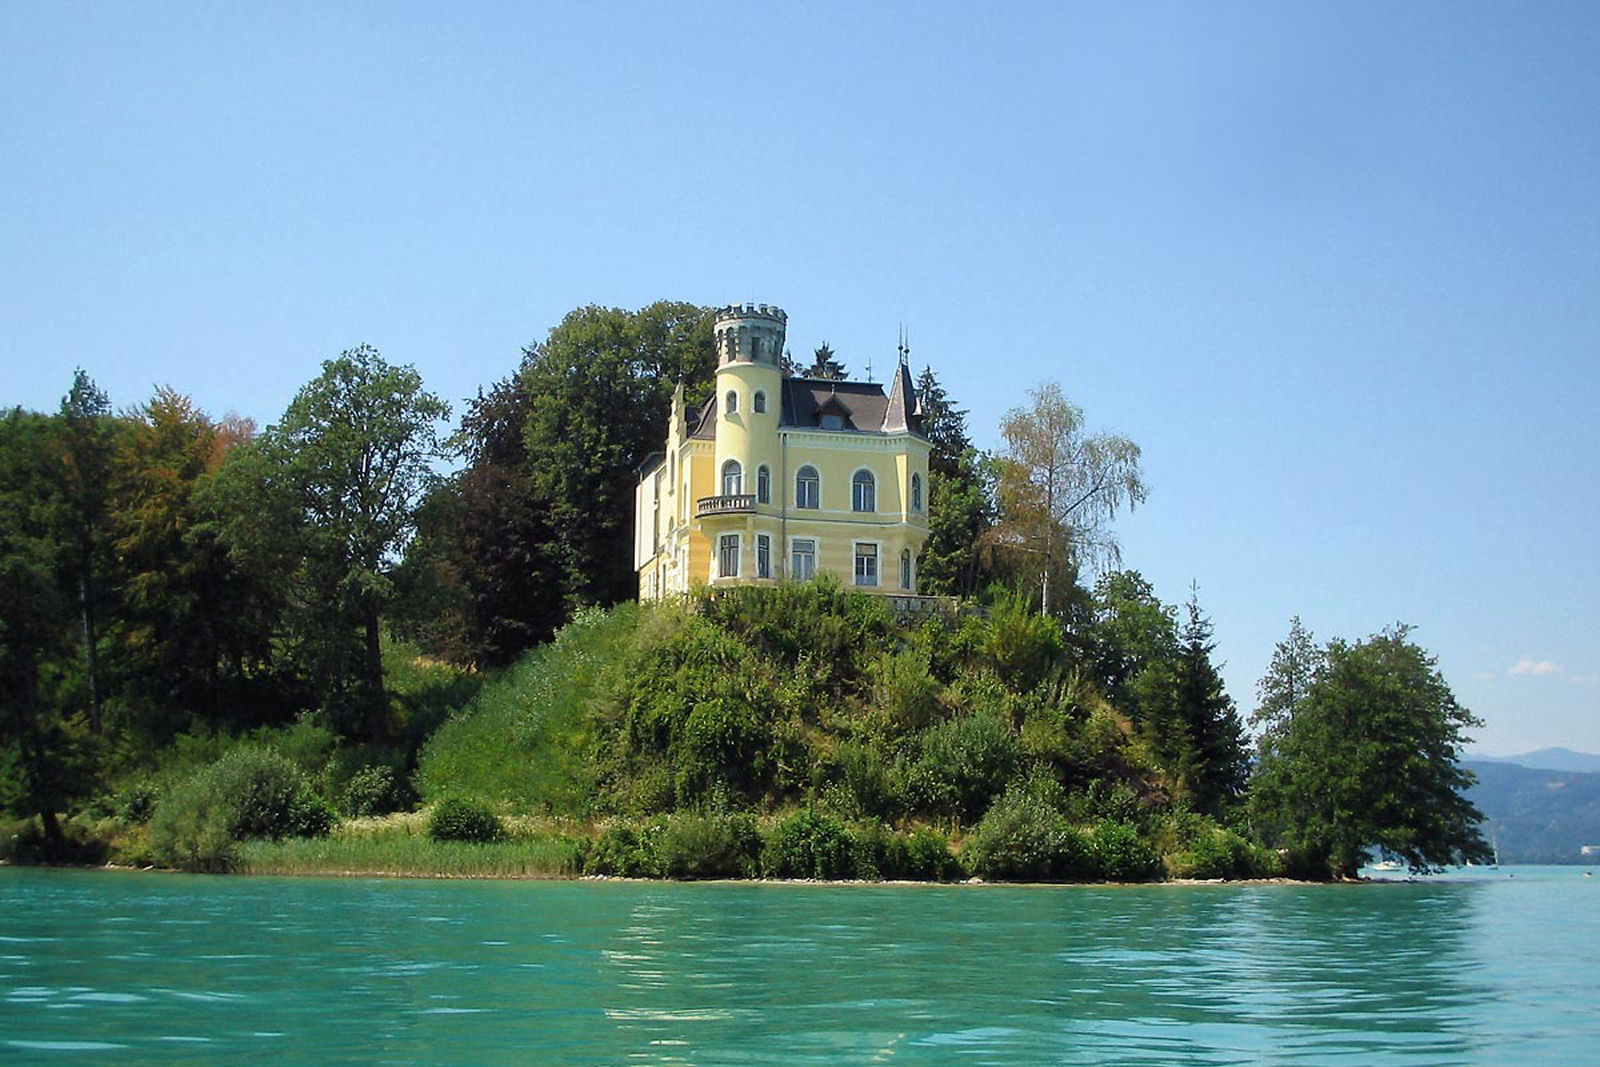 Reifnitz Castle on Lake Worth in Carinthia, Austria